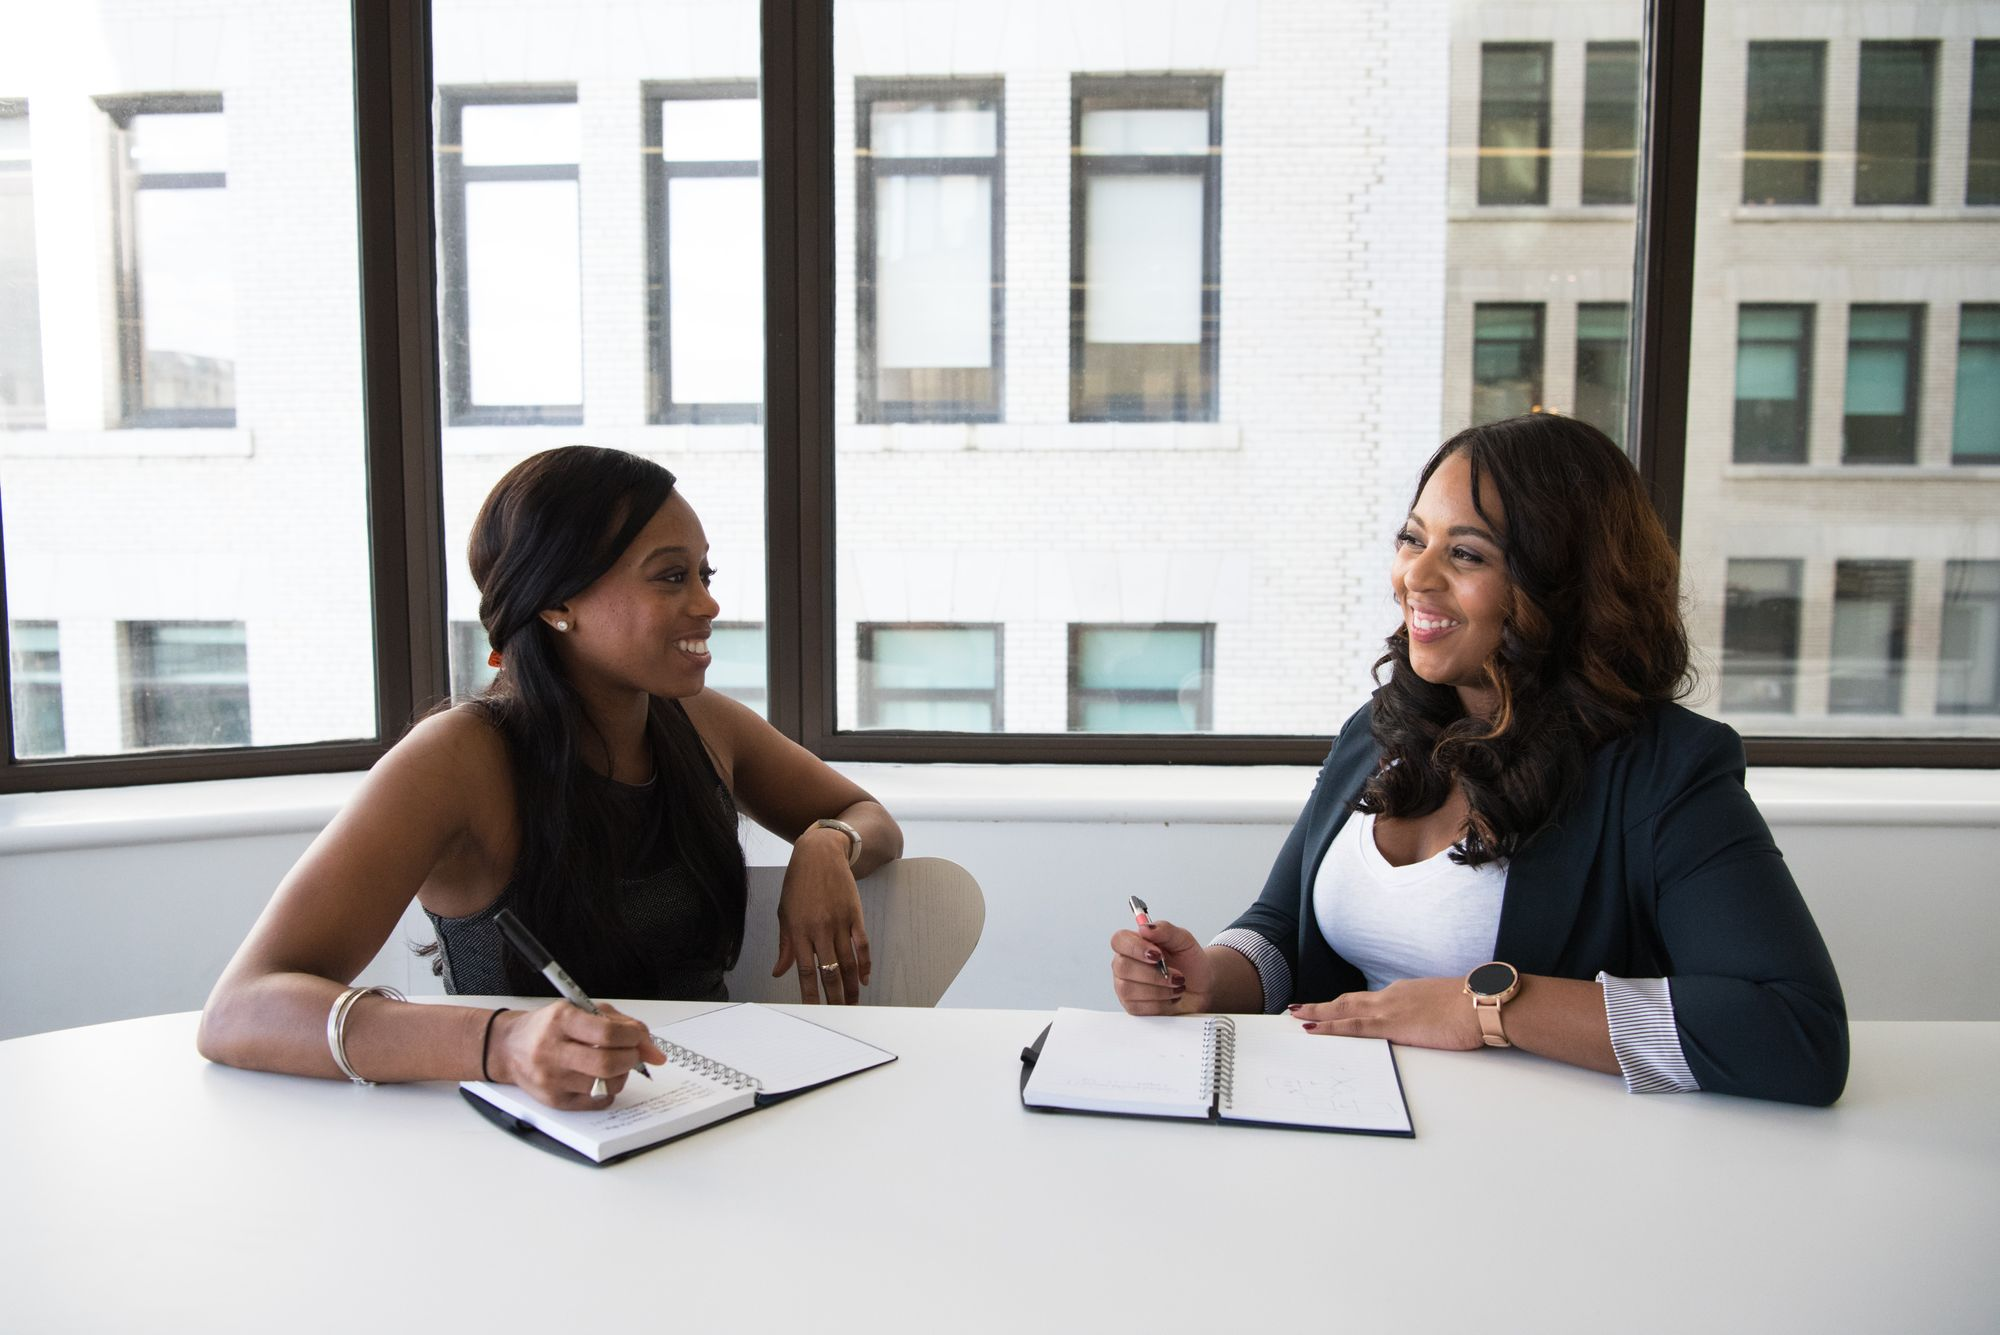 Business consultant as a side business for stay at home moms